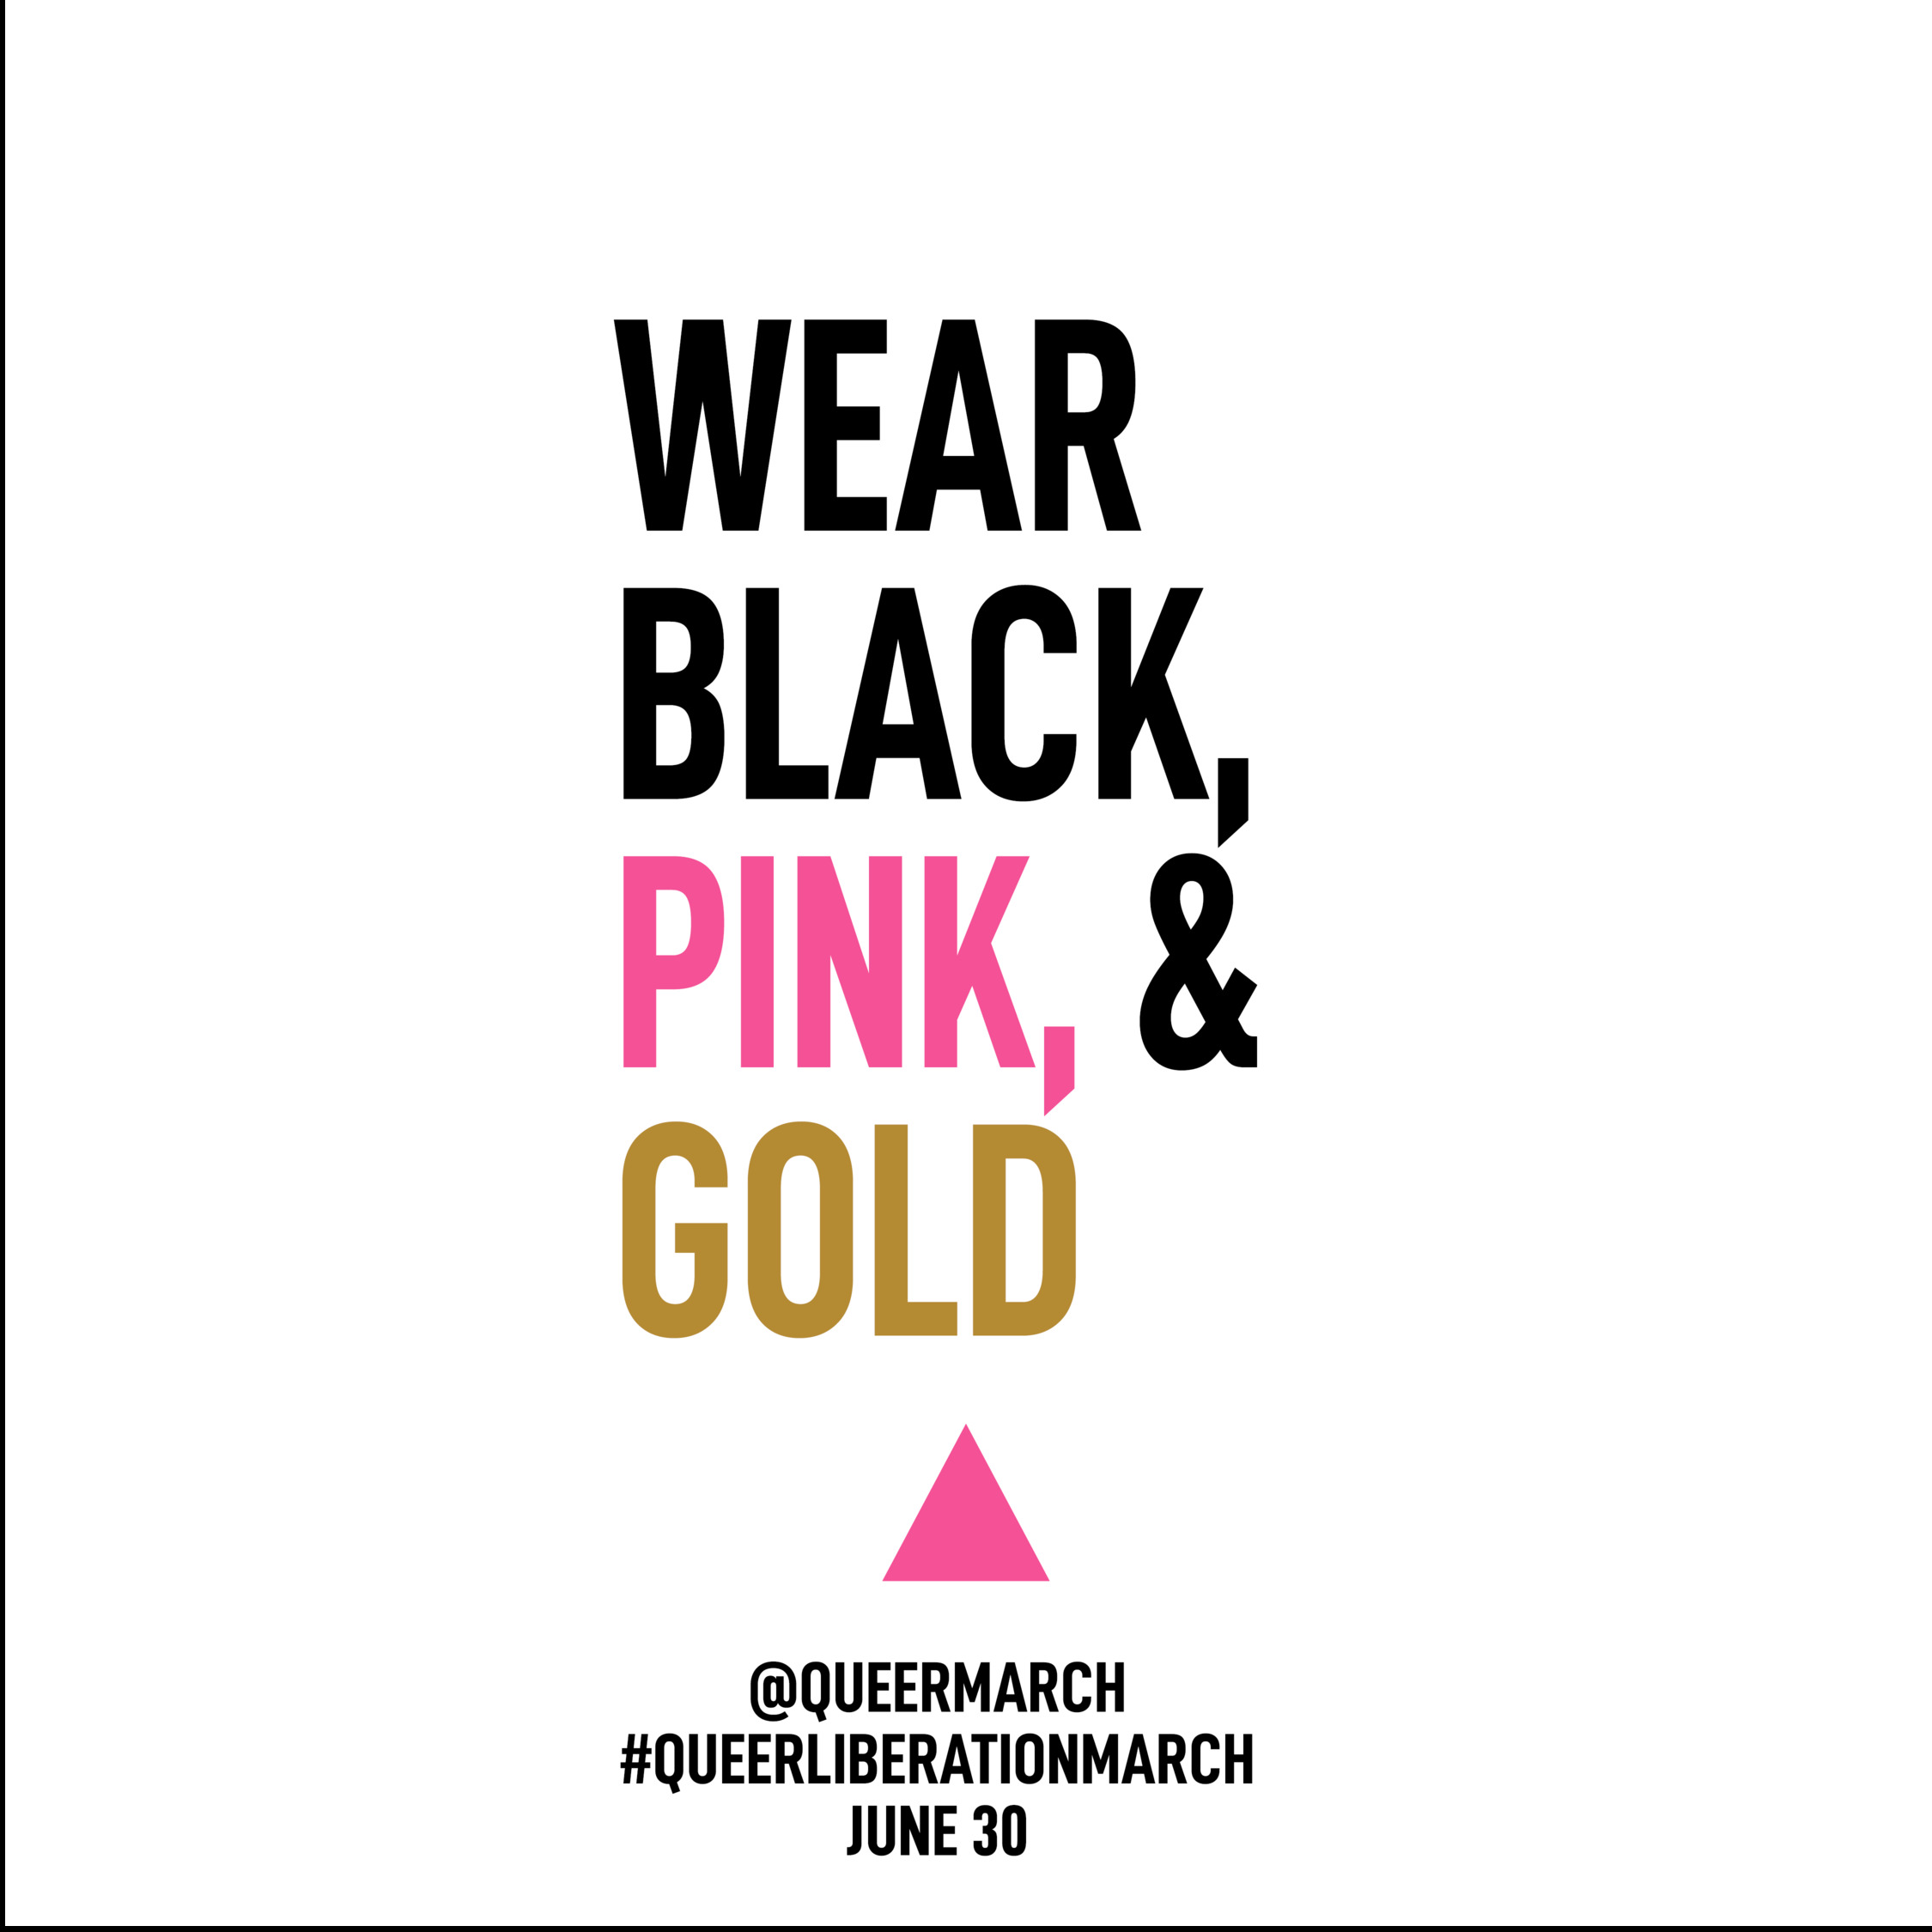 [RPC] Wear Black Pink and Gold (2 of 2) RevB1.jpg